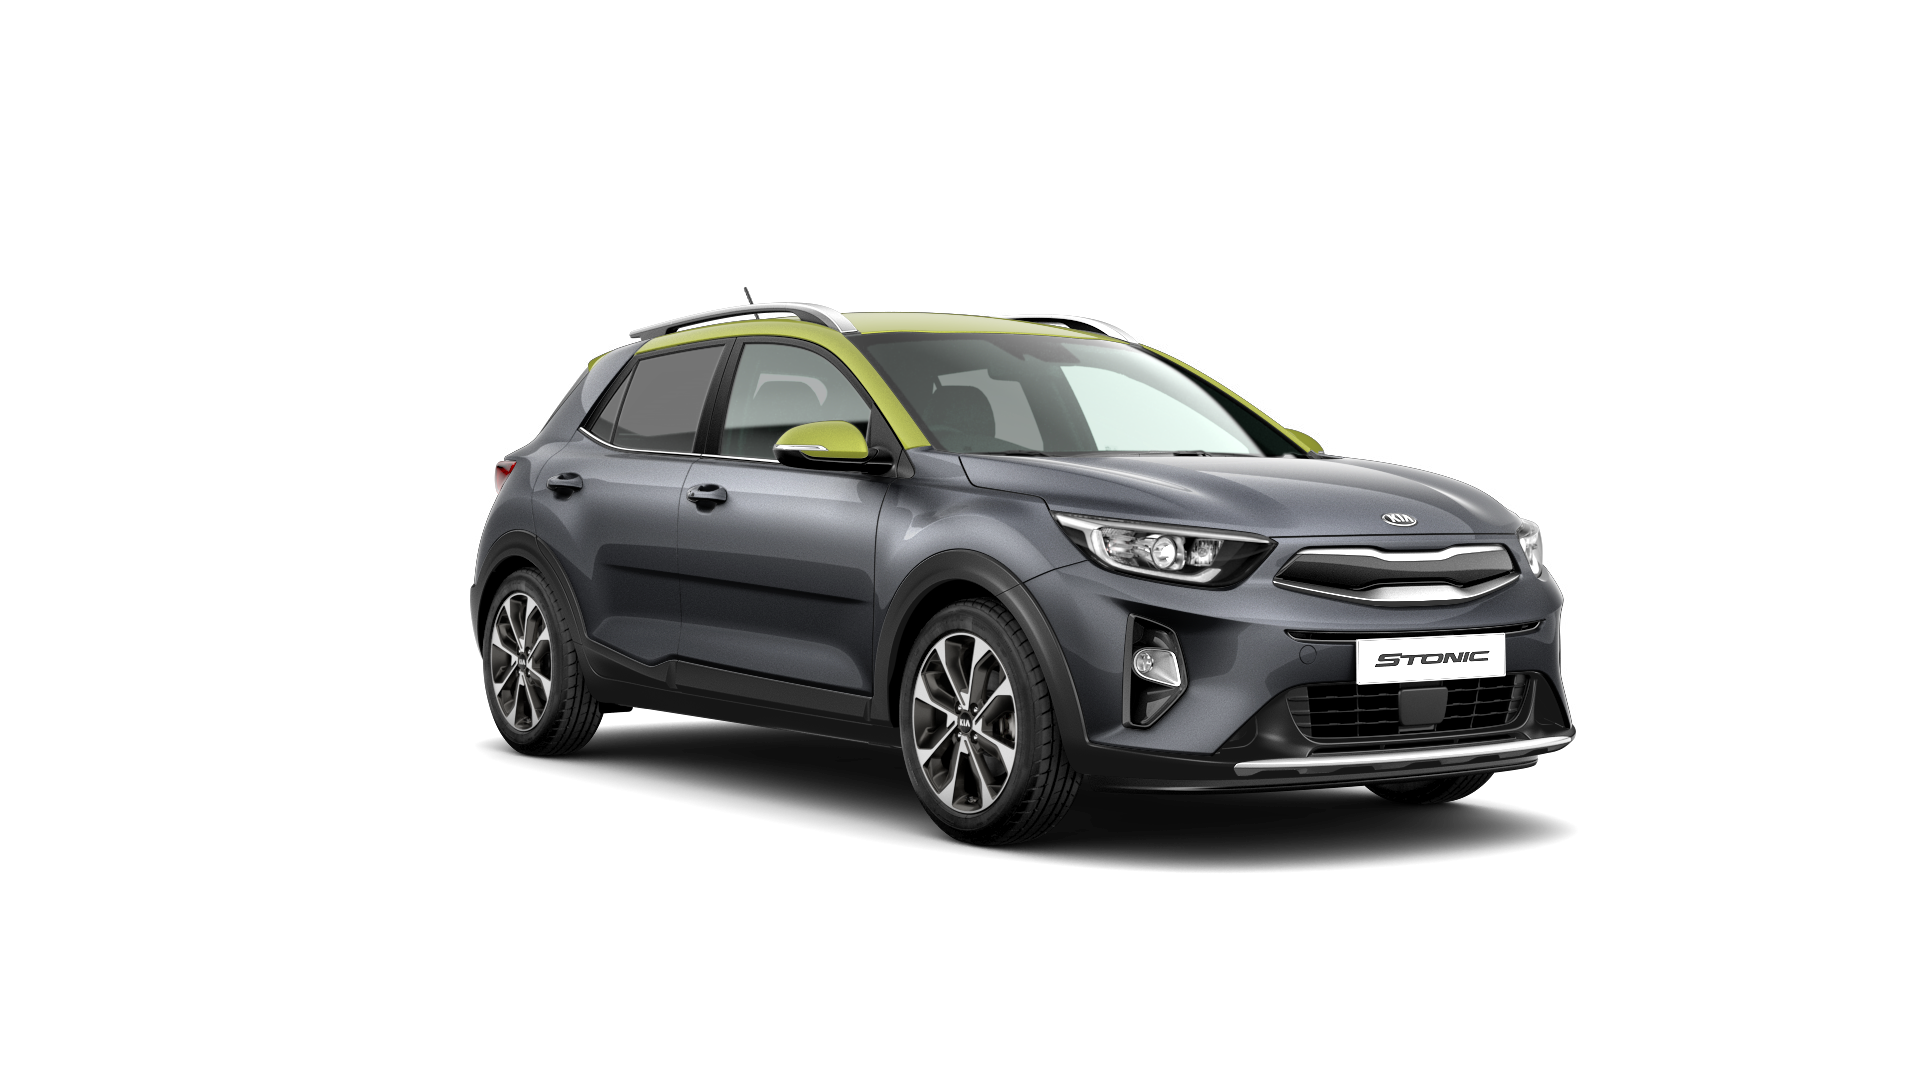 Kia Stonic First Edition - Graphite / Lime Green